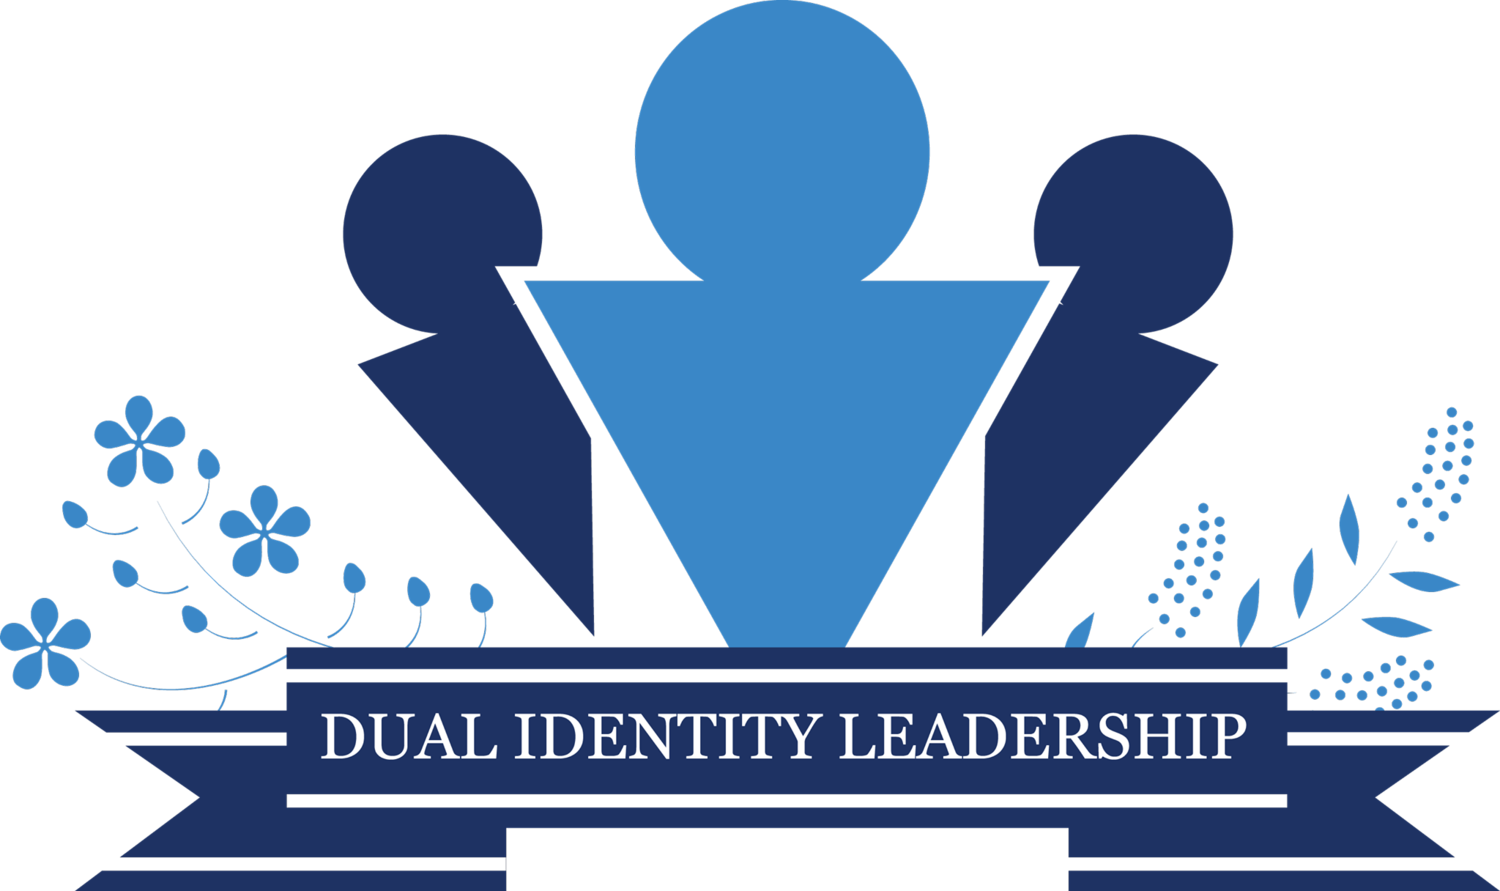 Dual Identity Leadership Program